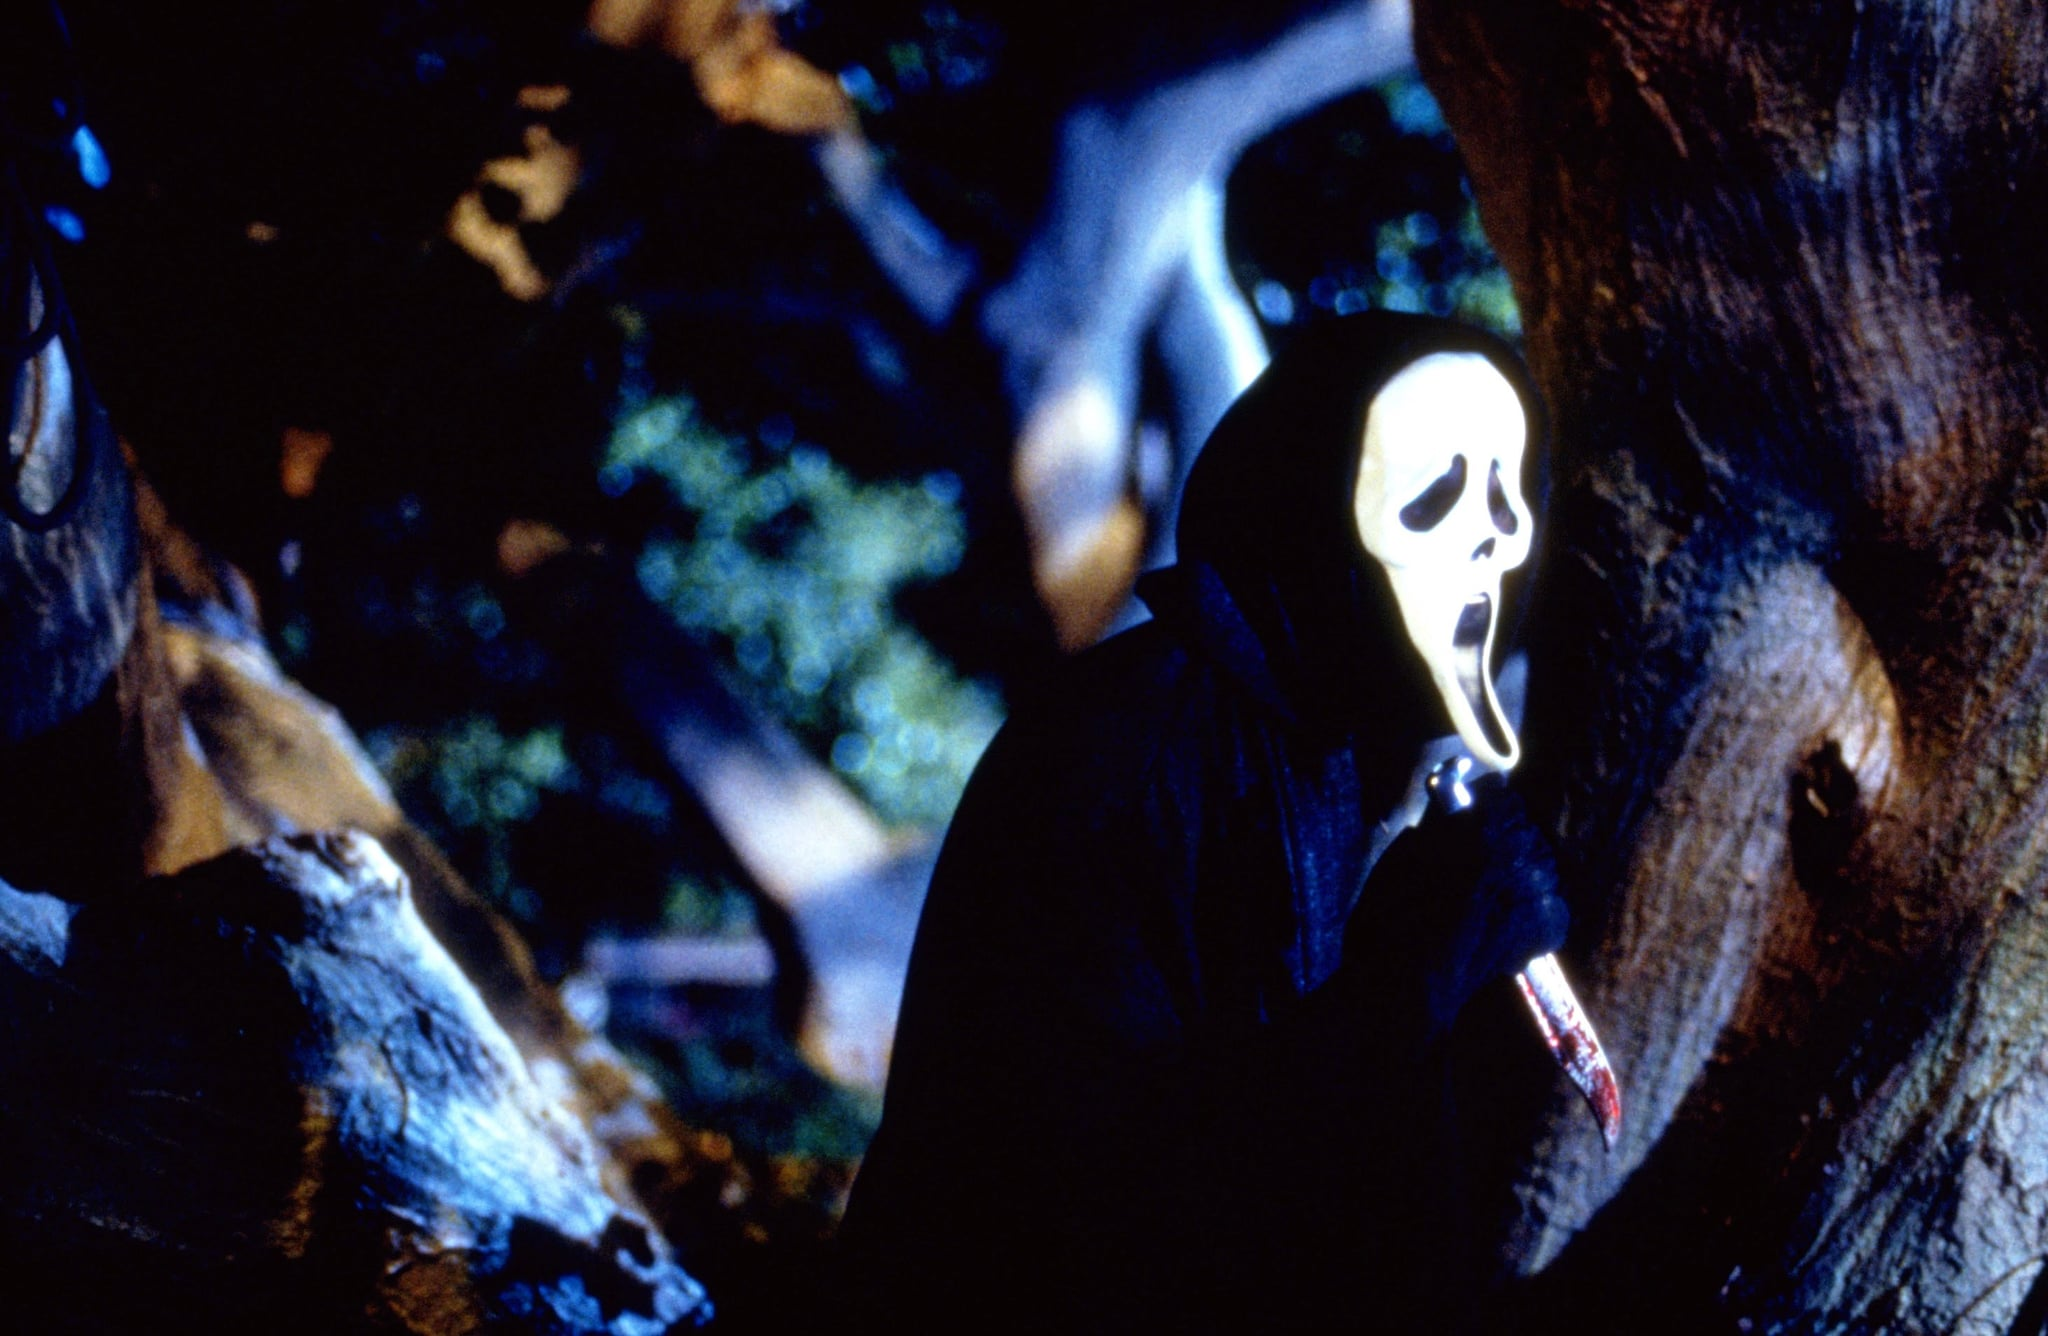 SCREAM 2, 1997,  Miramax/courtesy Everett Collection